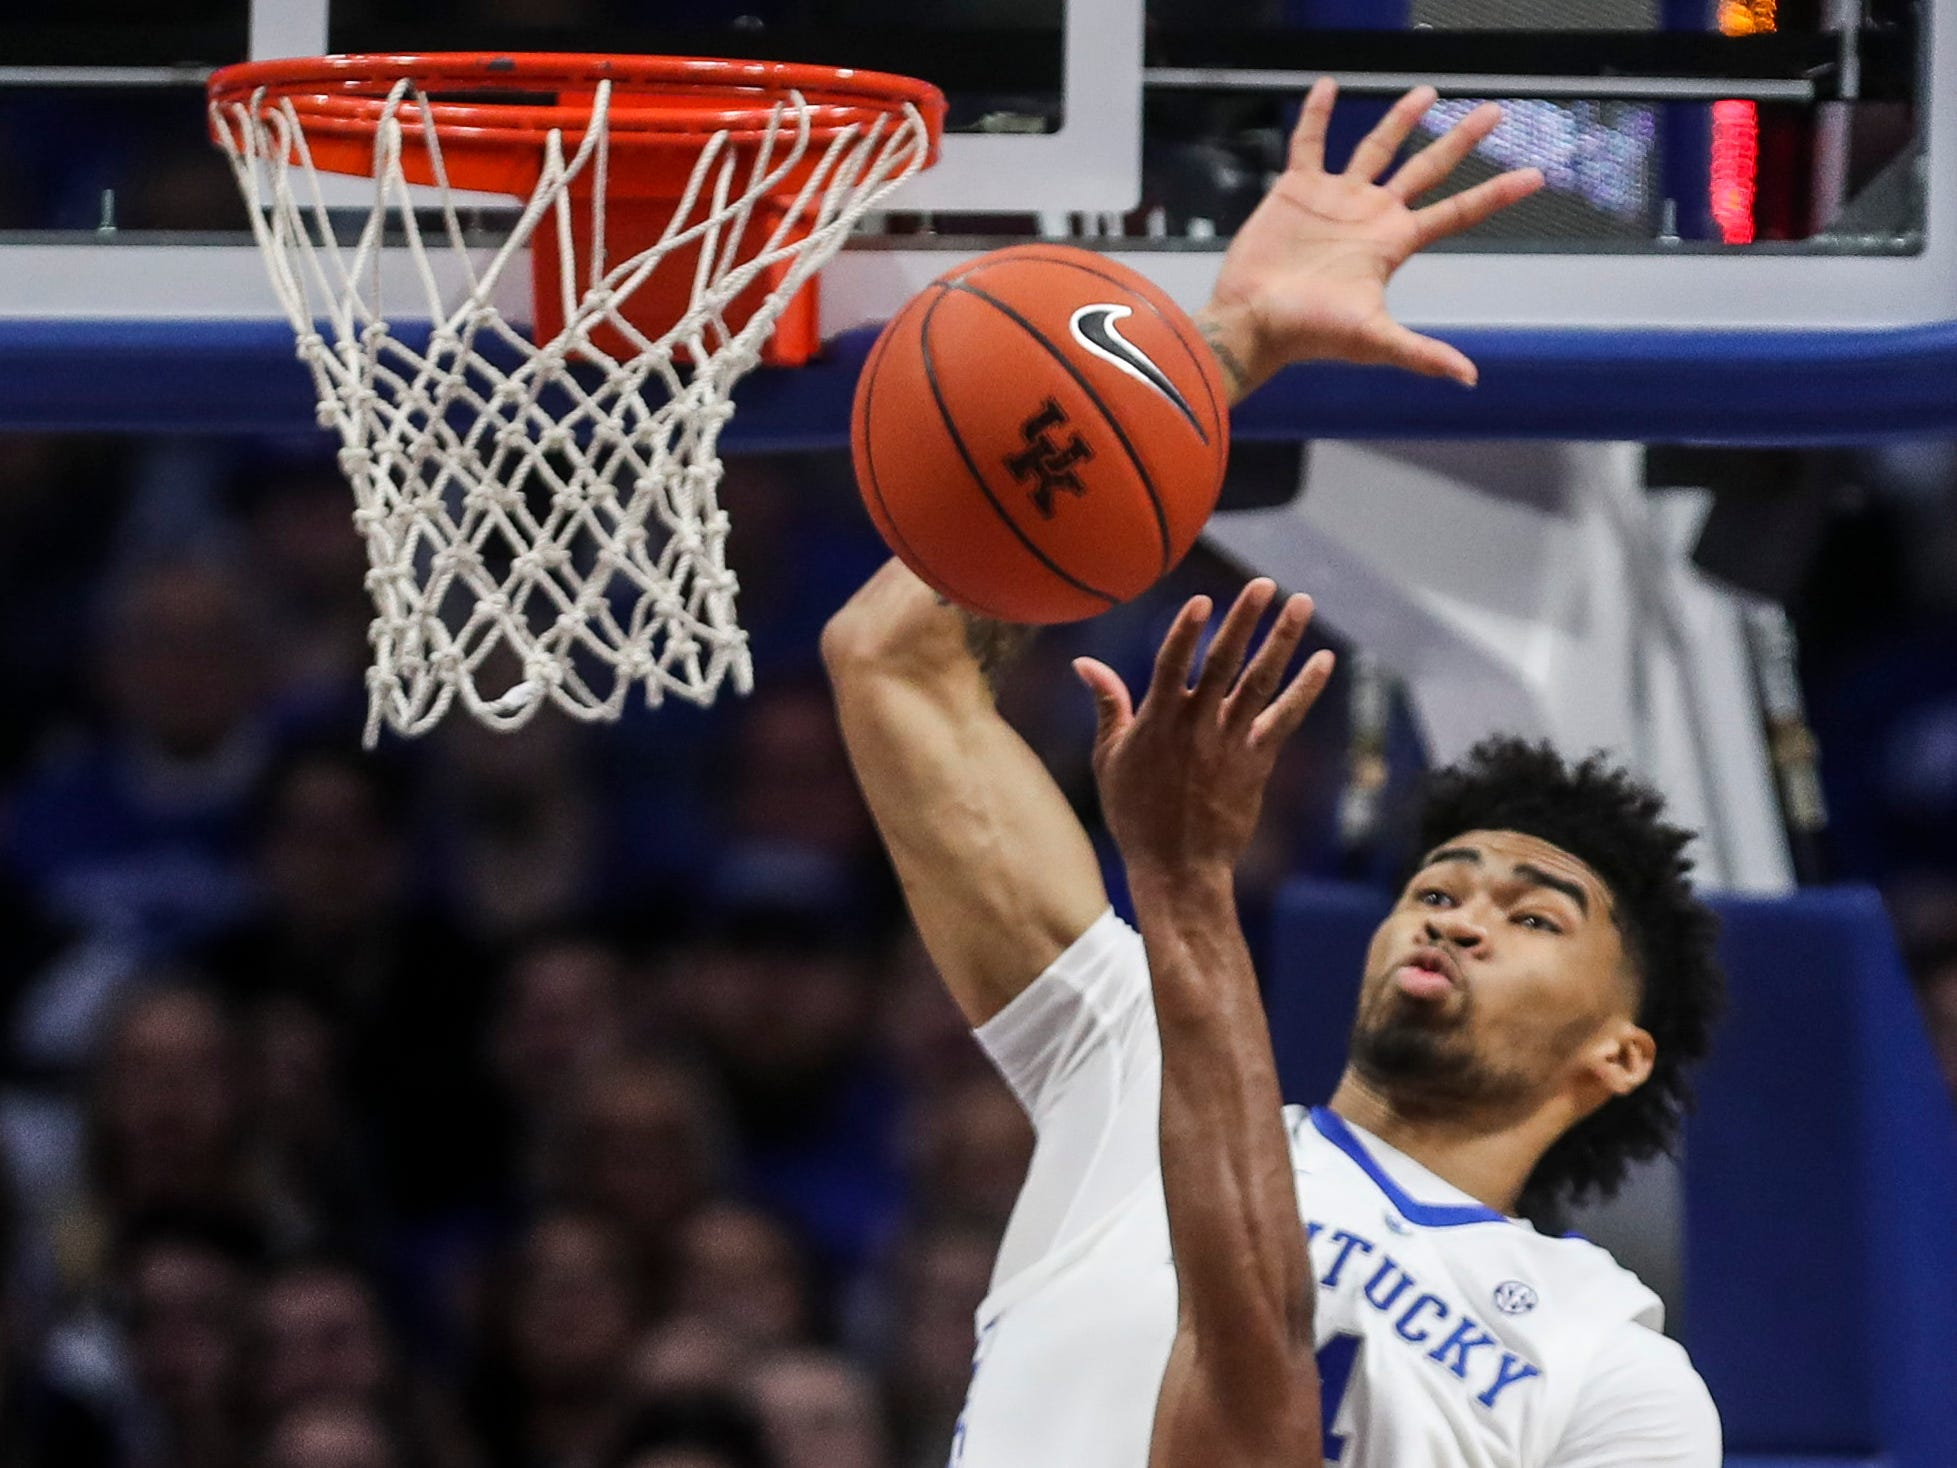 Kentucky's Nick Richards blocked this shot but was called for the foul in the first half against Vandy Saturday night at Rupp Arena in Lexington. . January 12, 2019